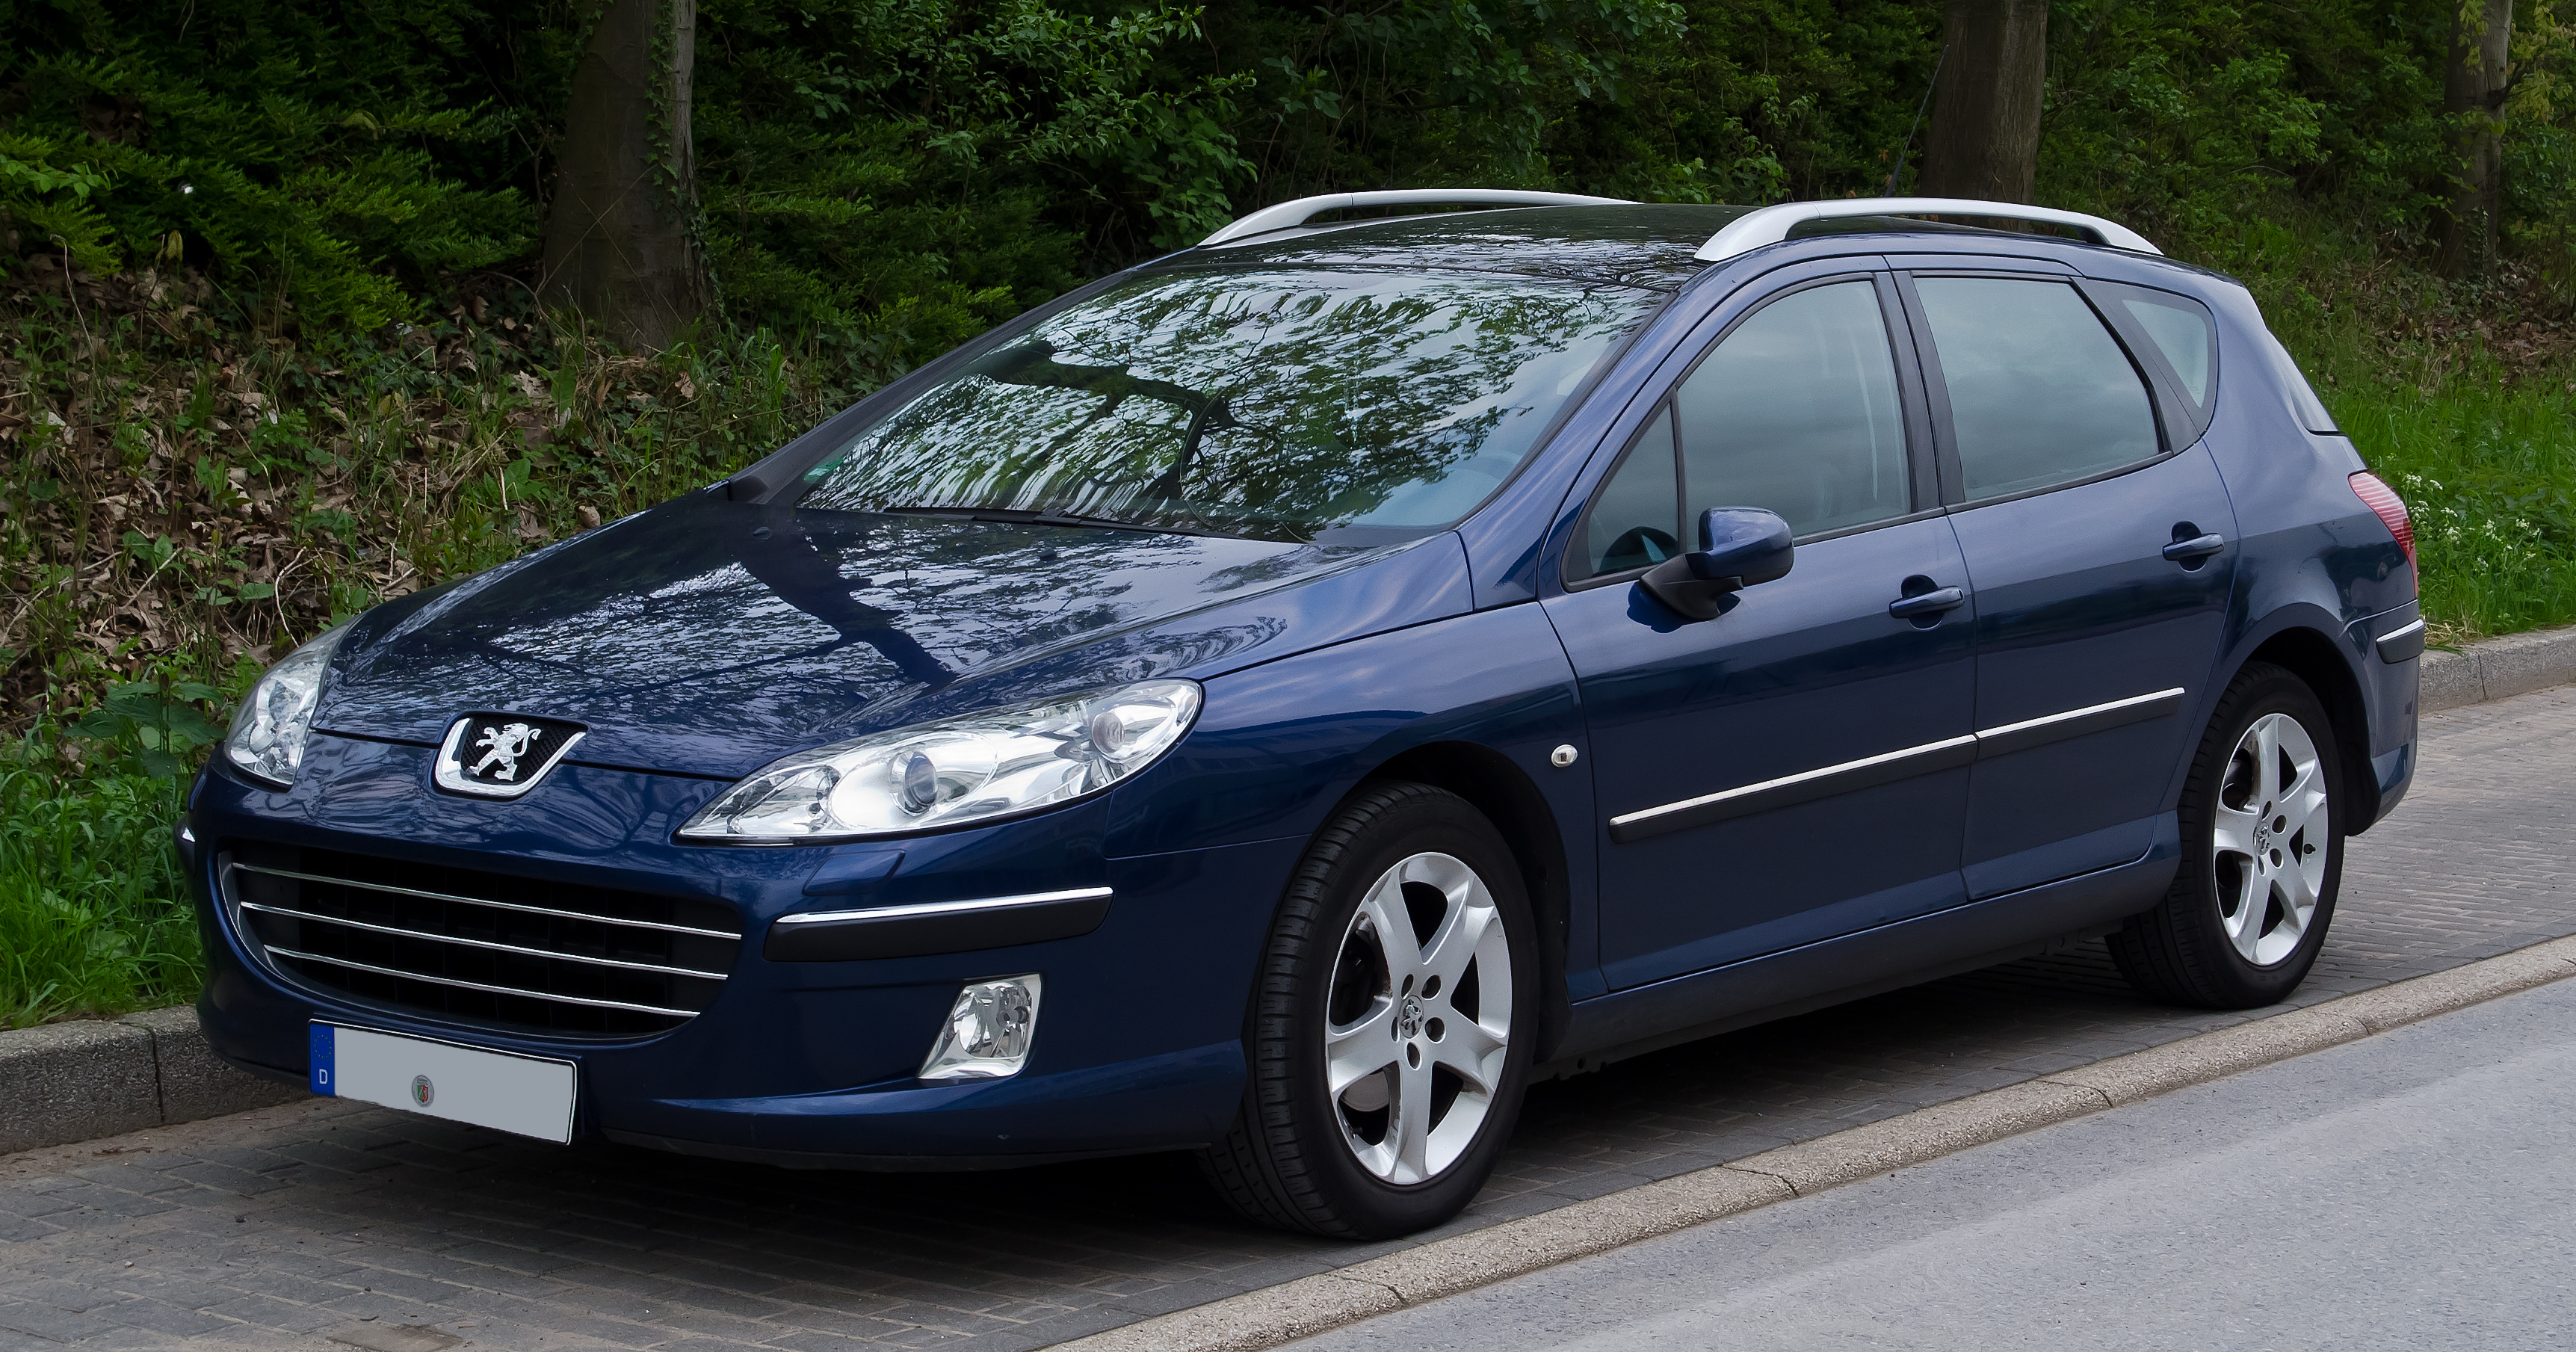 file peugeot 407 sw facelift frontansicht 3 mai 2012 w wikimedia commons. Black Bedroom Furniture Sets. Home Design Ideas